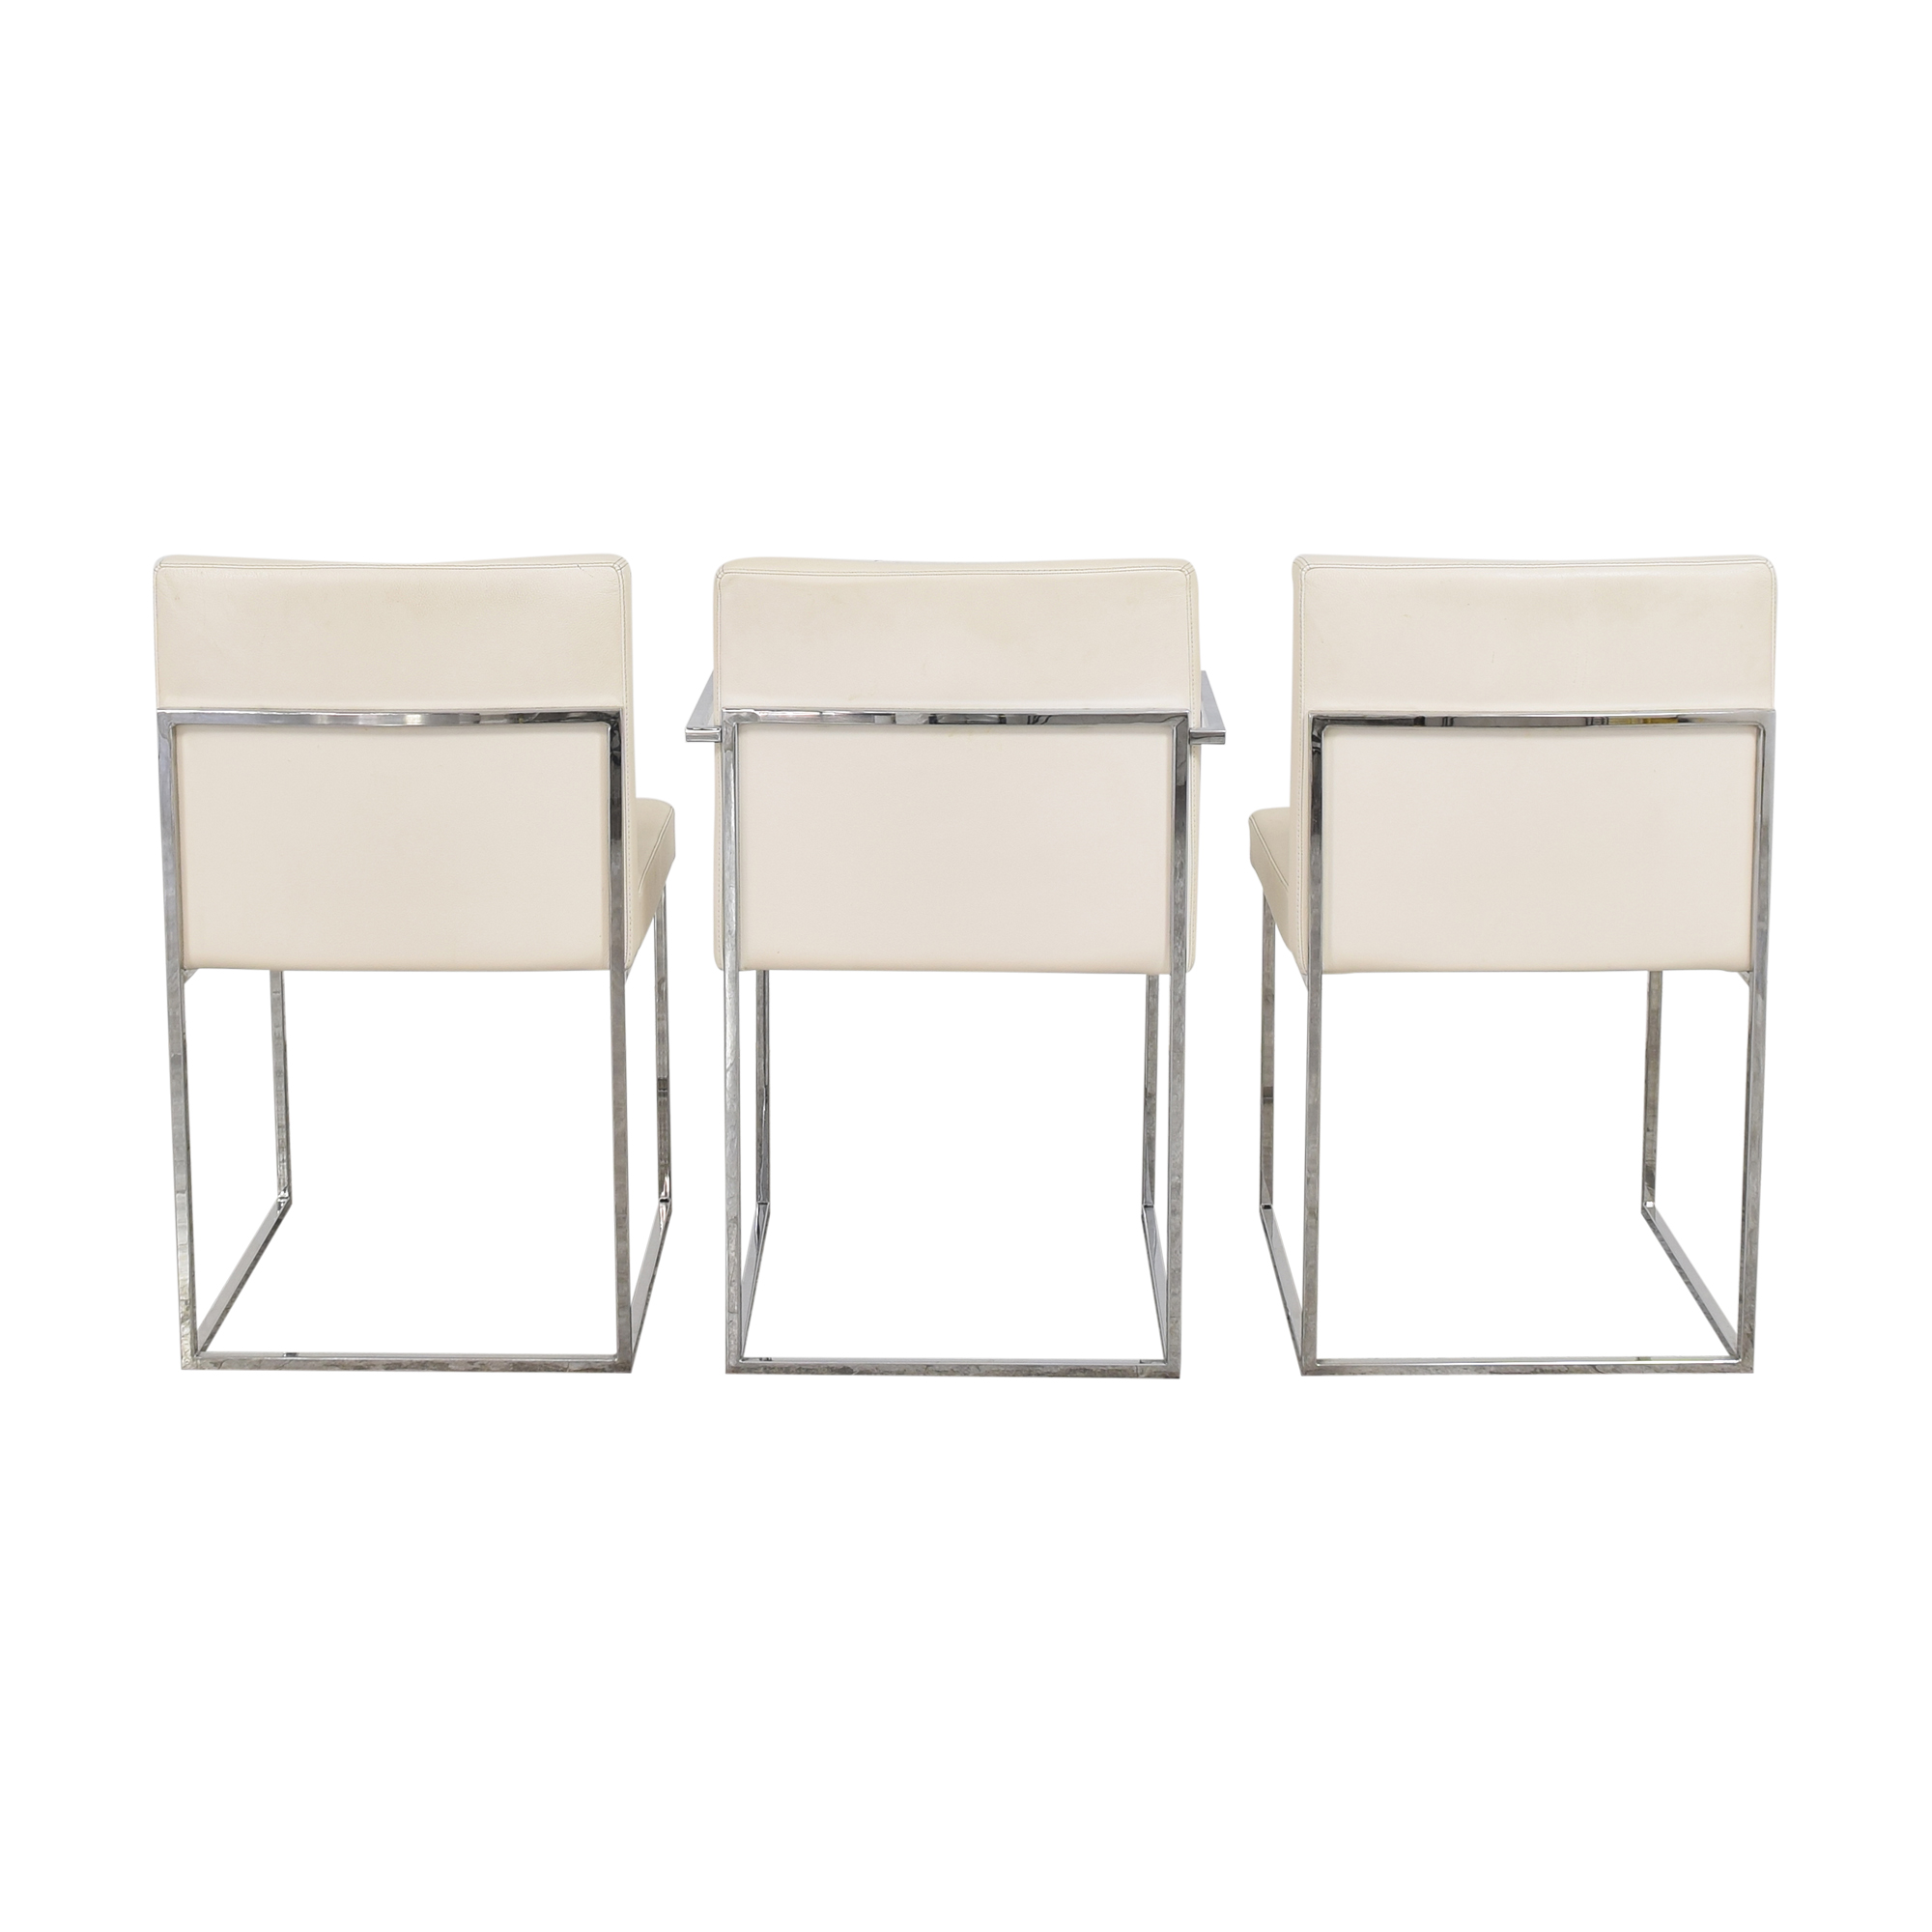 Calligaris Calligaris Even Plus Chairs Dining Chairs